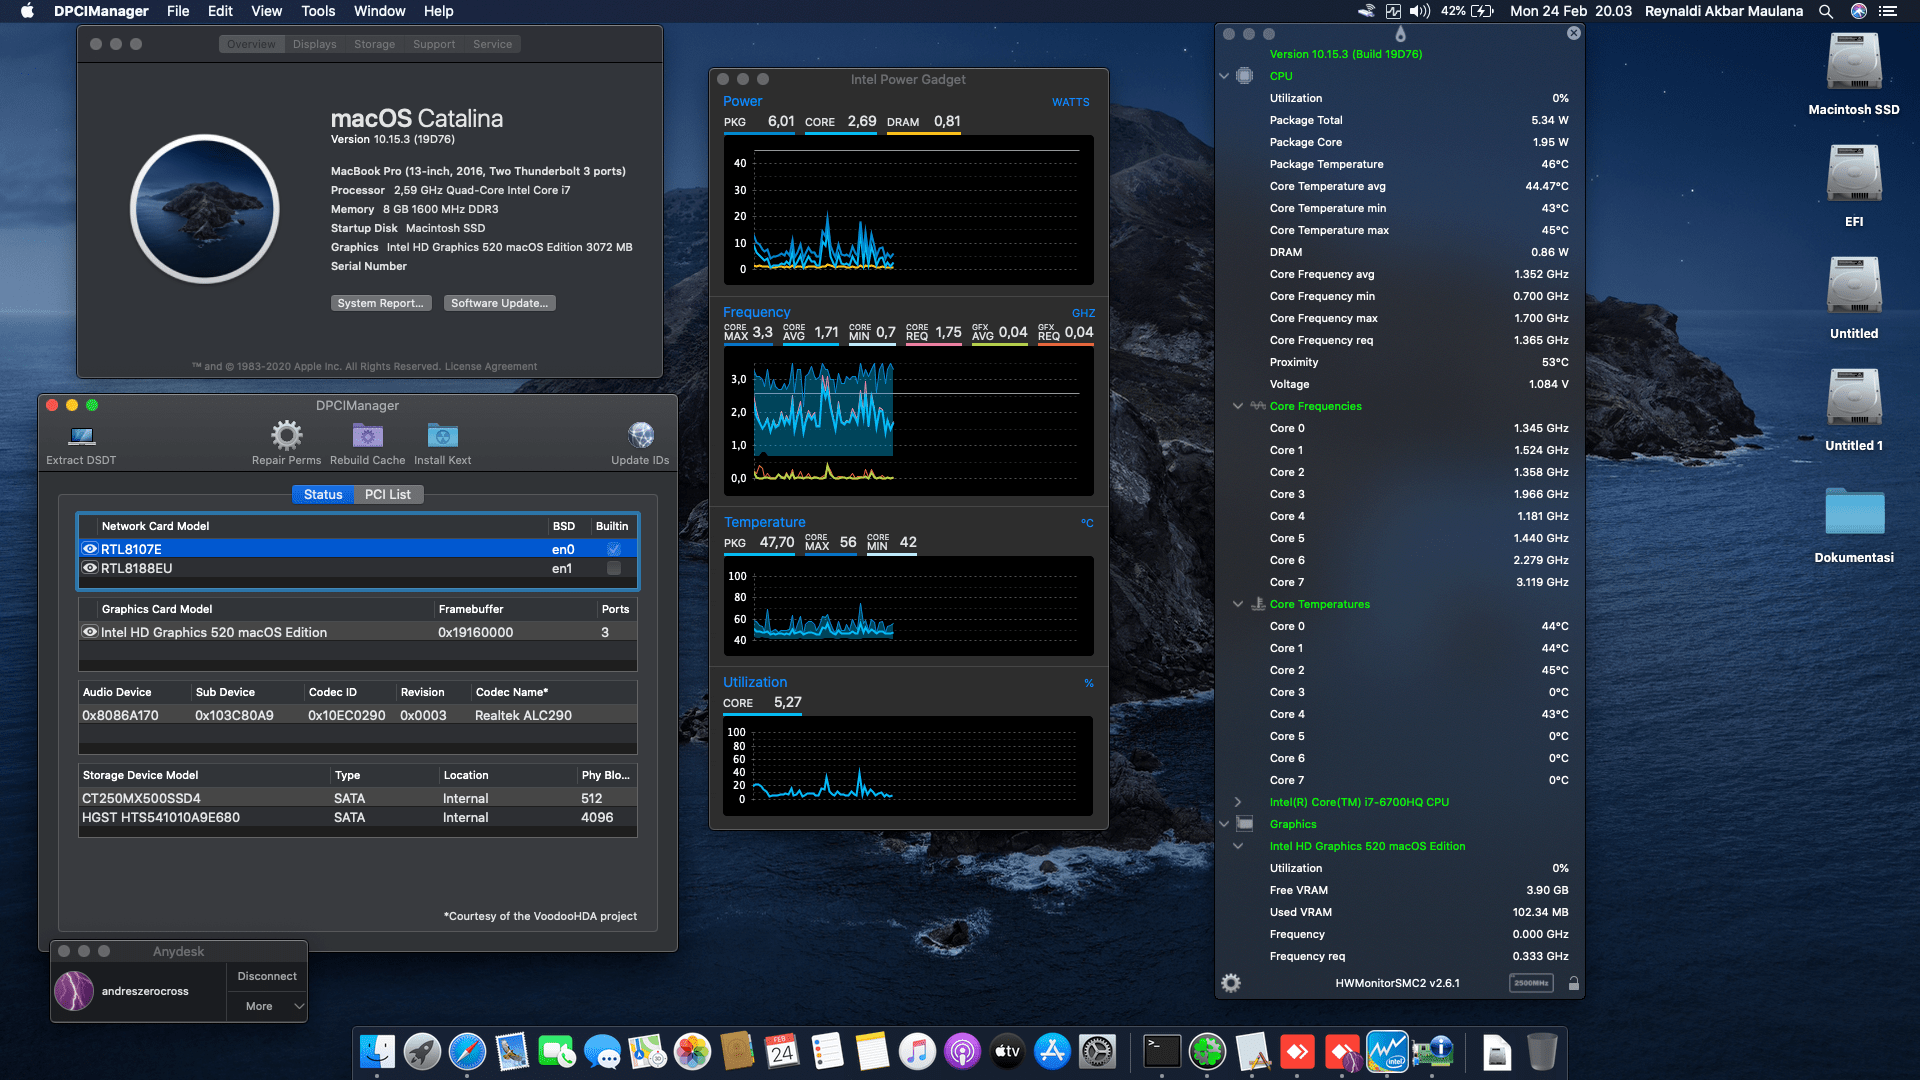 Success Hackintosh macOS Catalina 10.15.3 Build 19D76 at HP Pavilion 15-AK050TX